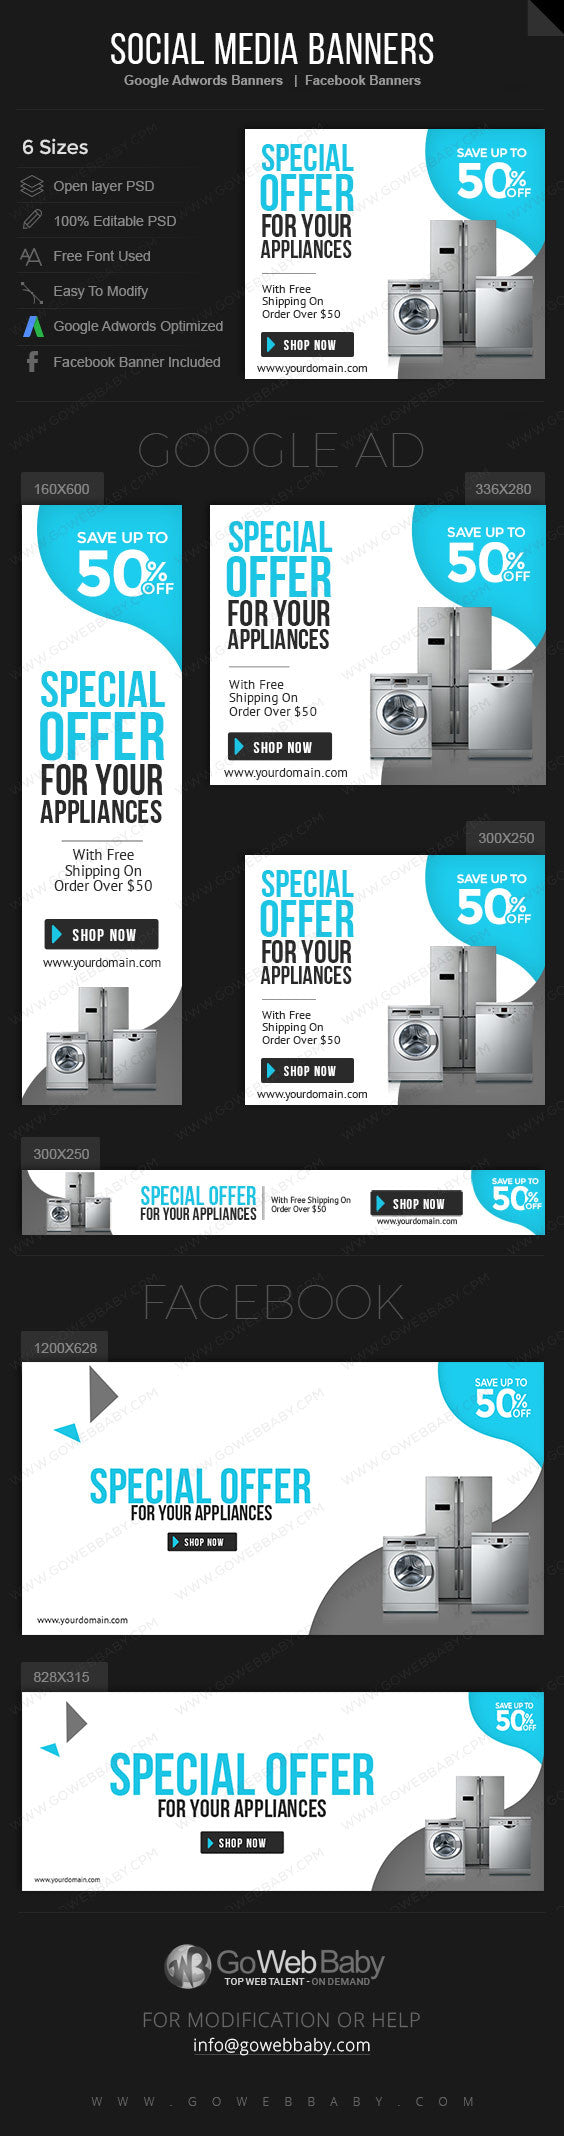 Google Adwords Display Banner with Facebook banners - Appliances Store for Website Marketing - GoWebBaby.Com